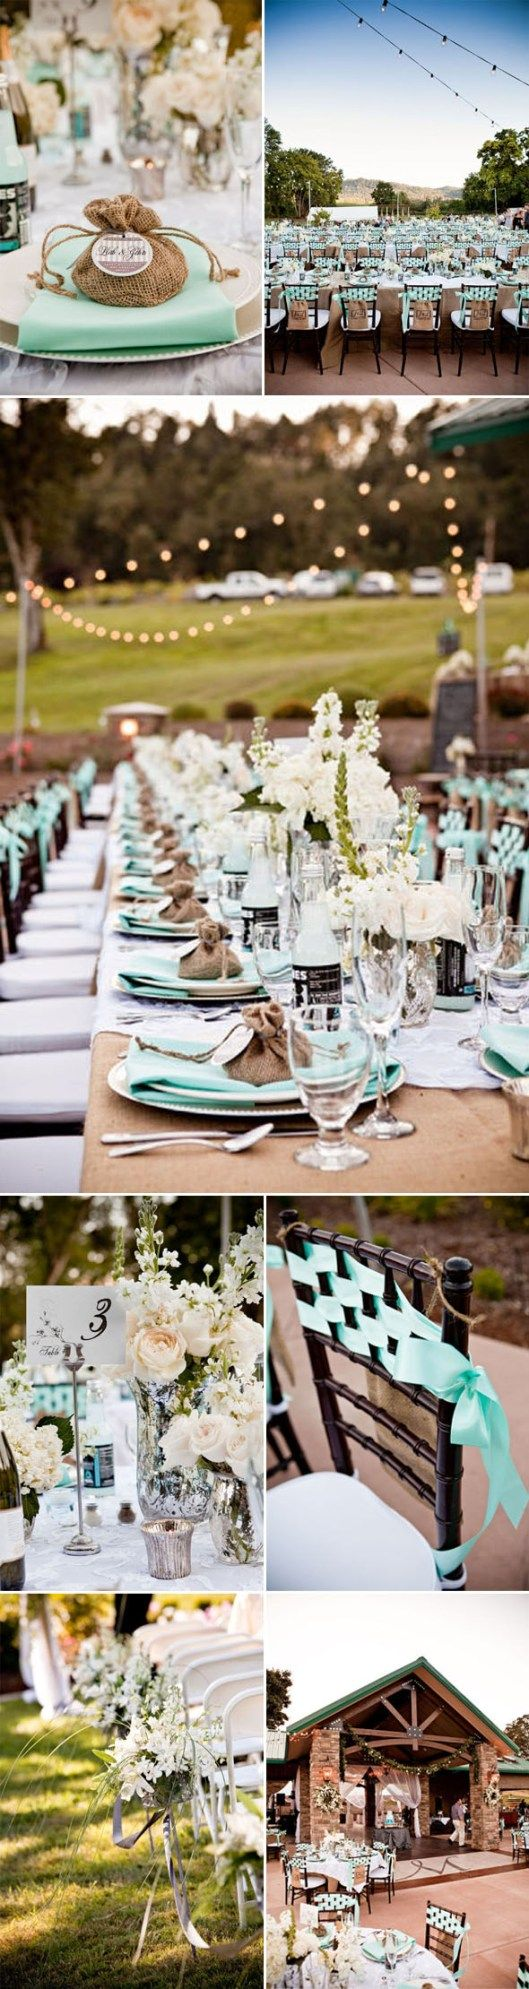 Aqua Wedding--I like the mercury glass, burlap, white flowers, and pops of color. I don't like whatever they did to the chairs...